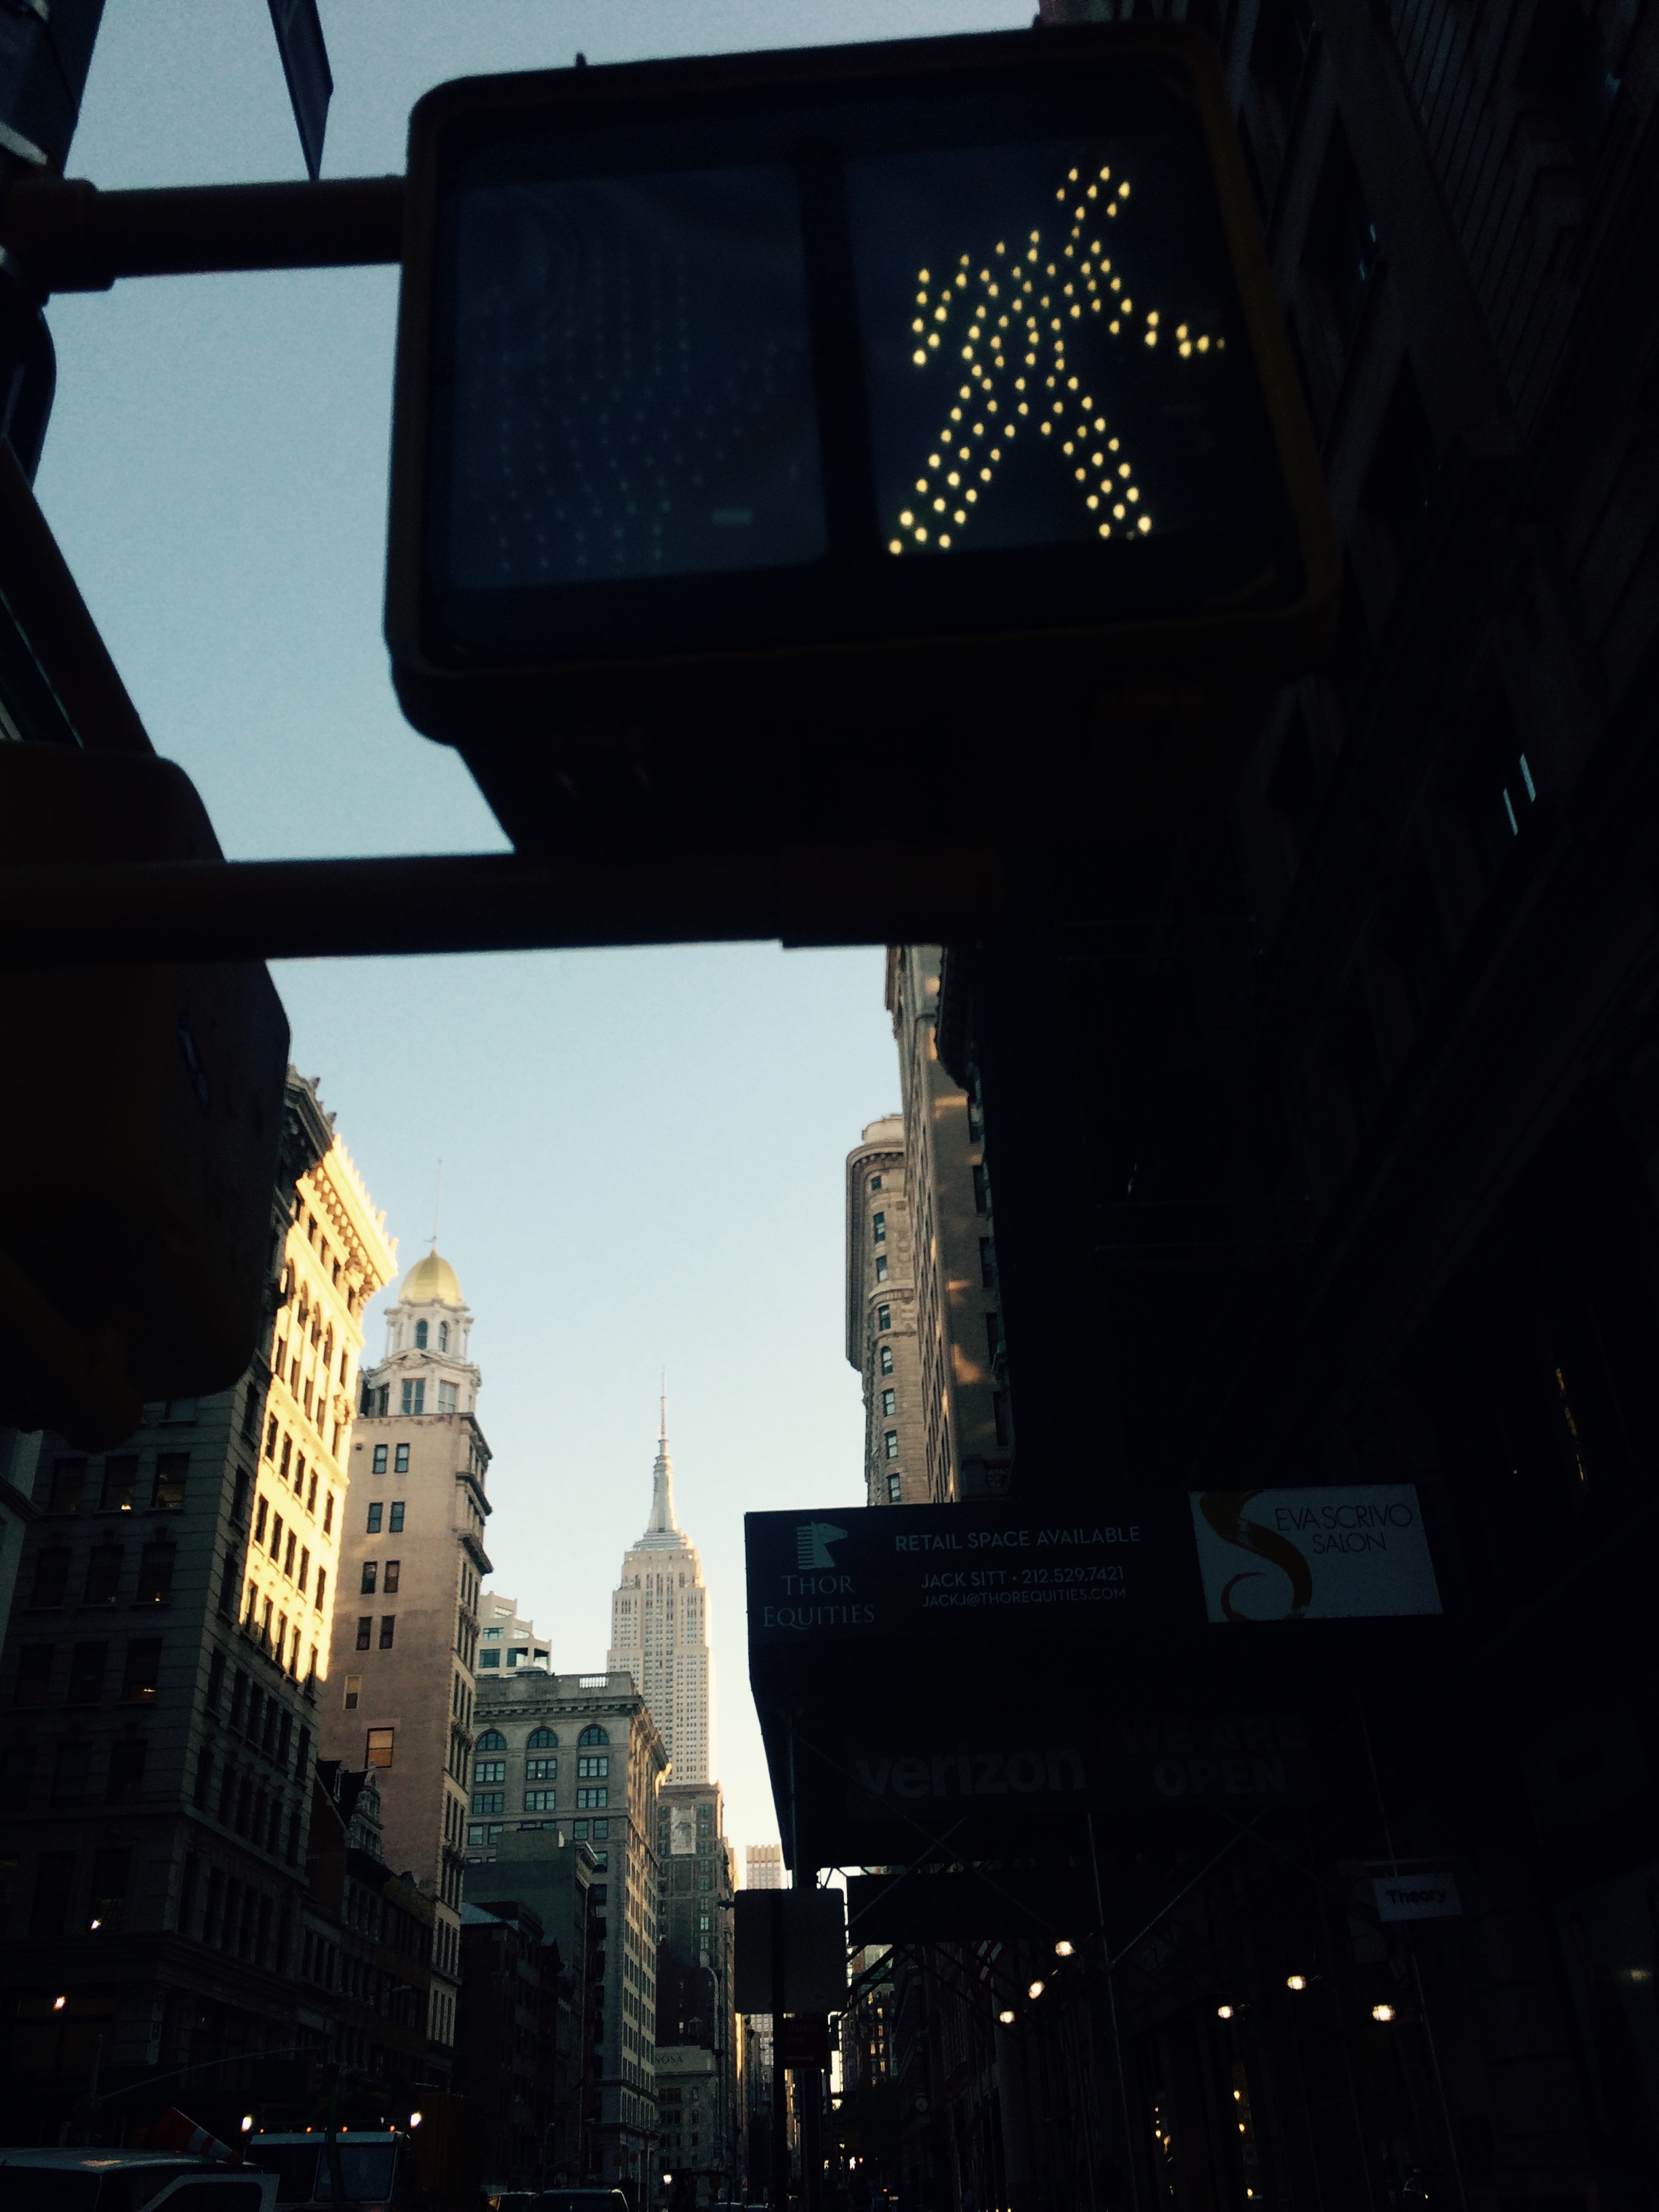 In NewYork to catch Norah Jones playing at LPR before her Ronnie Scott's gig.